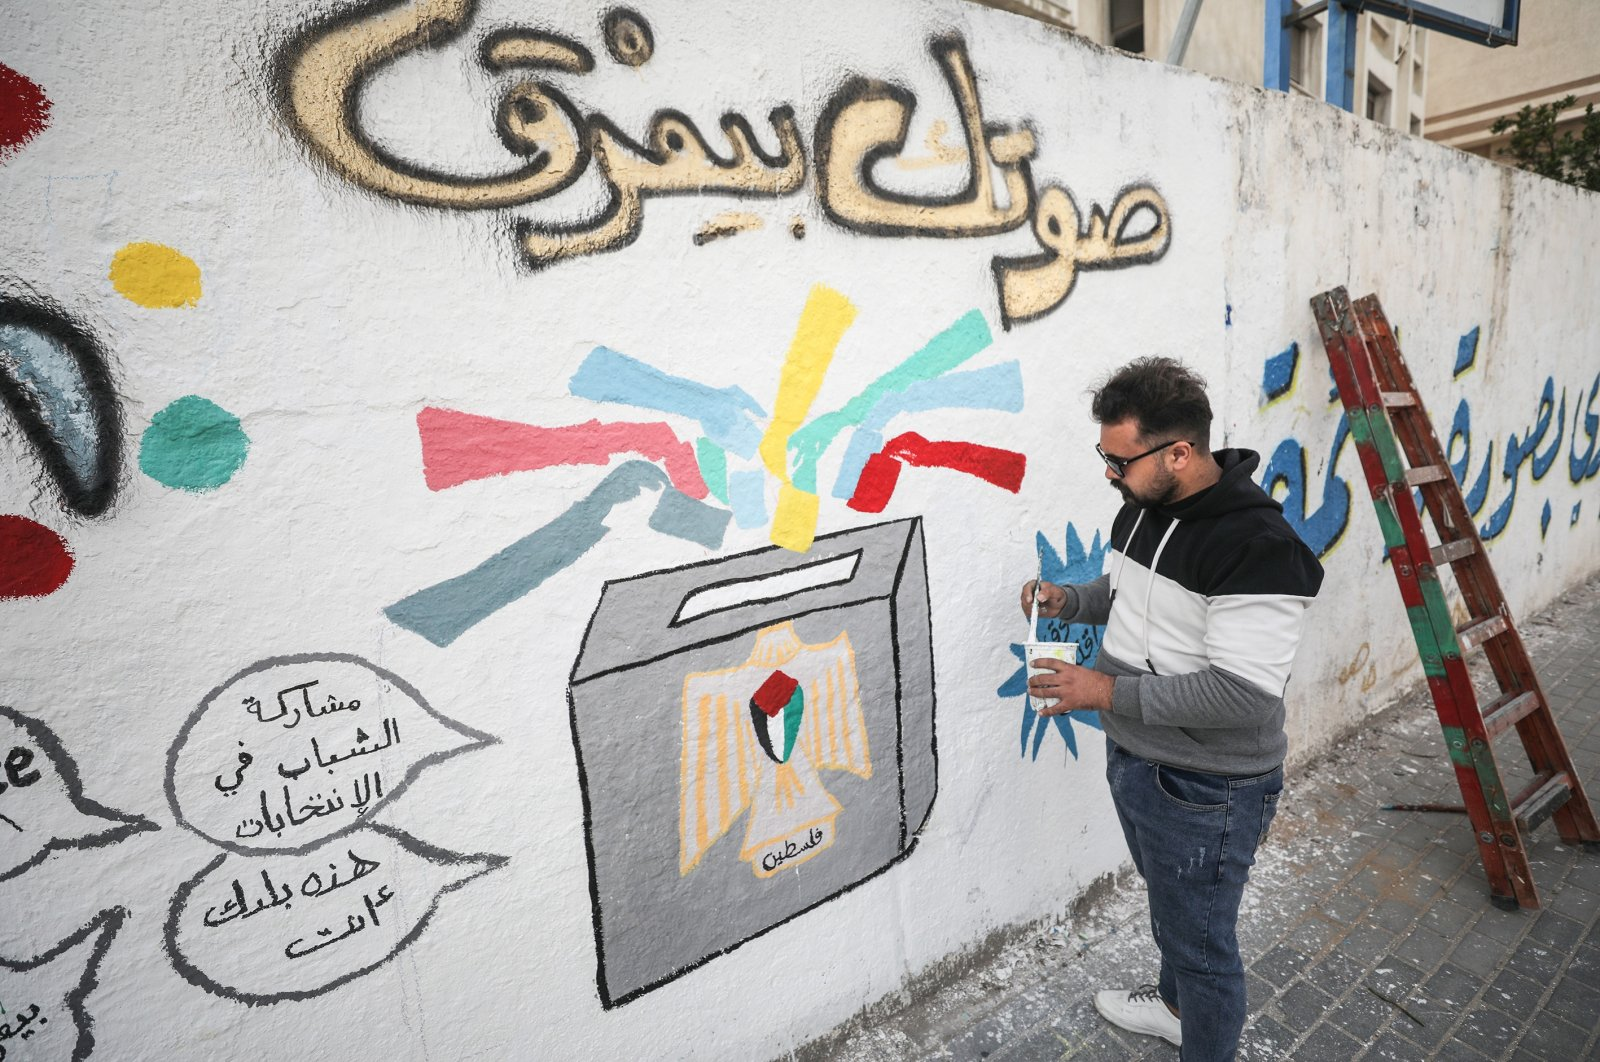 A Palestinian artist paints graffiti on a wall in the Gaza Strip to draw attention to the importance of voting in the Palestinian Legislative Council elections scheduled for May 22, Gaza, Palestine, March 24, 2021. (AA Photo)